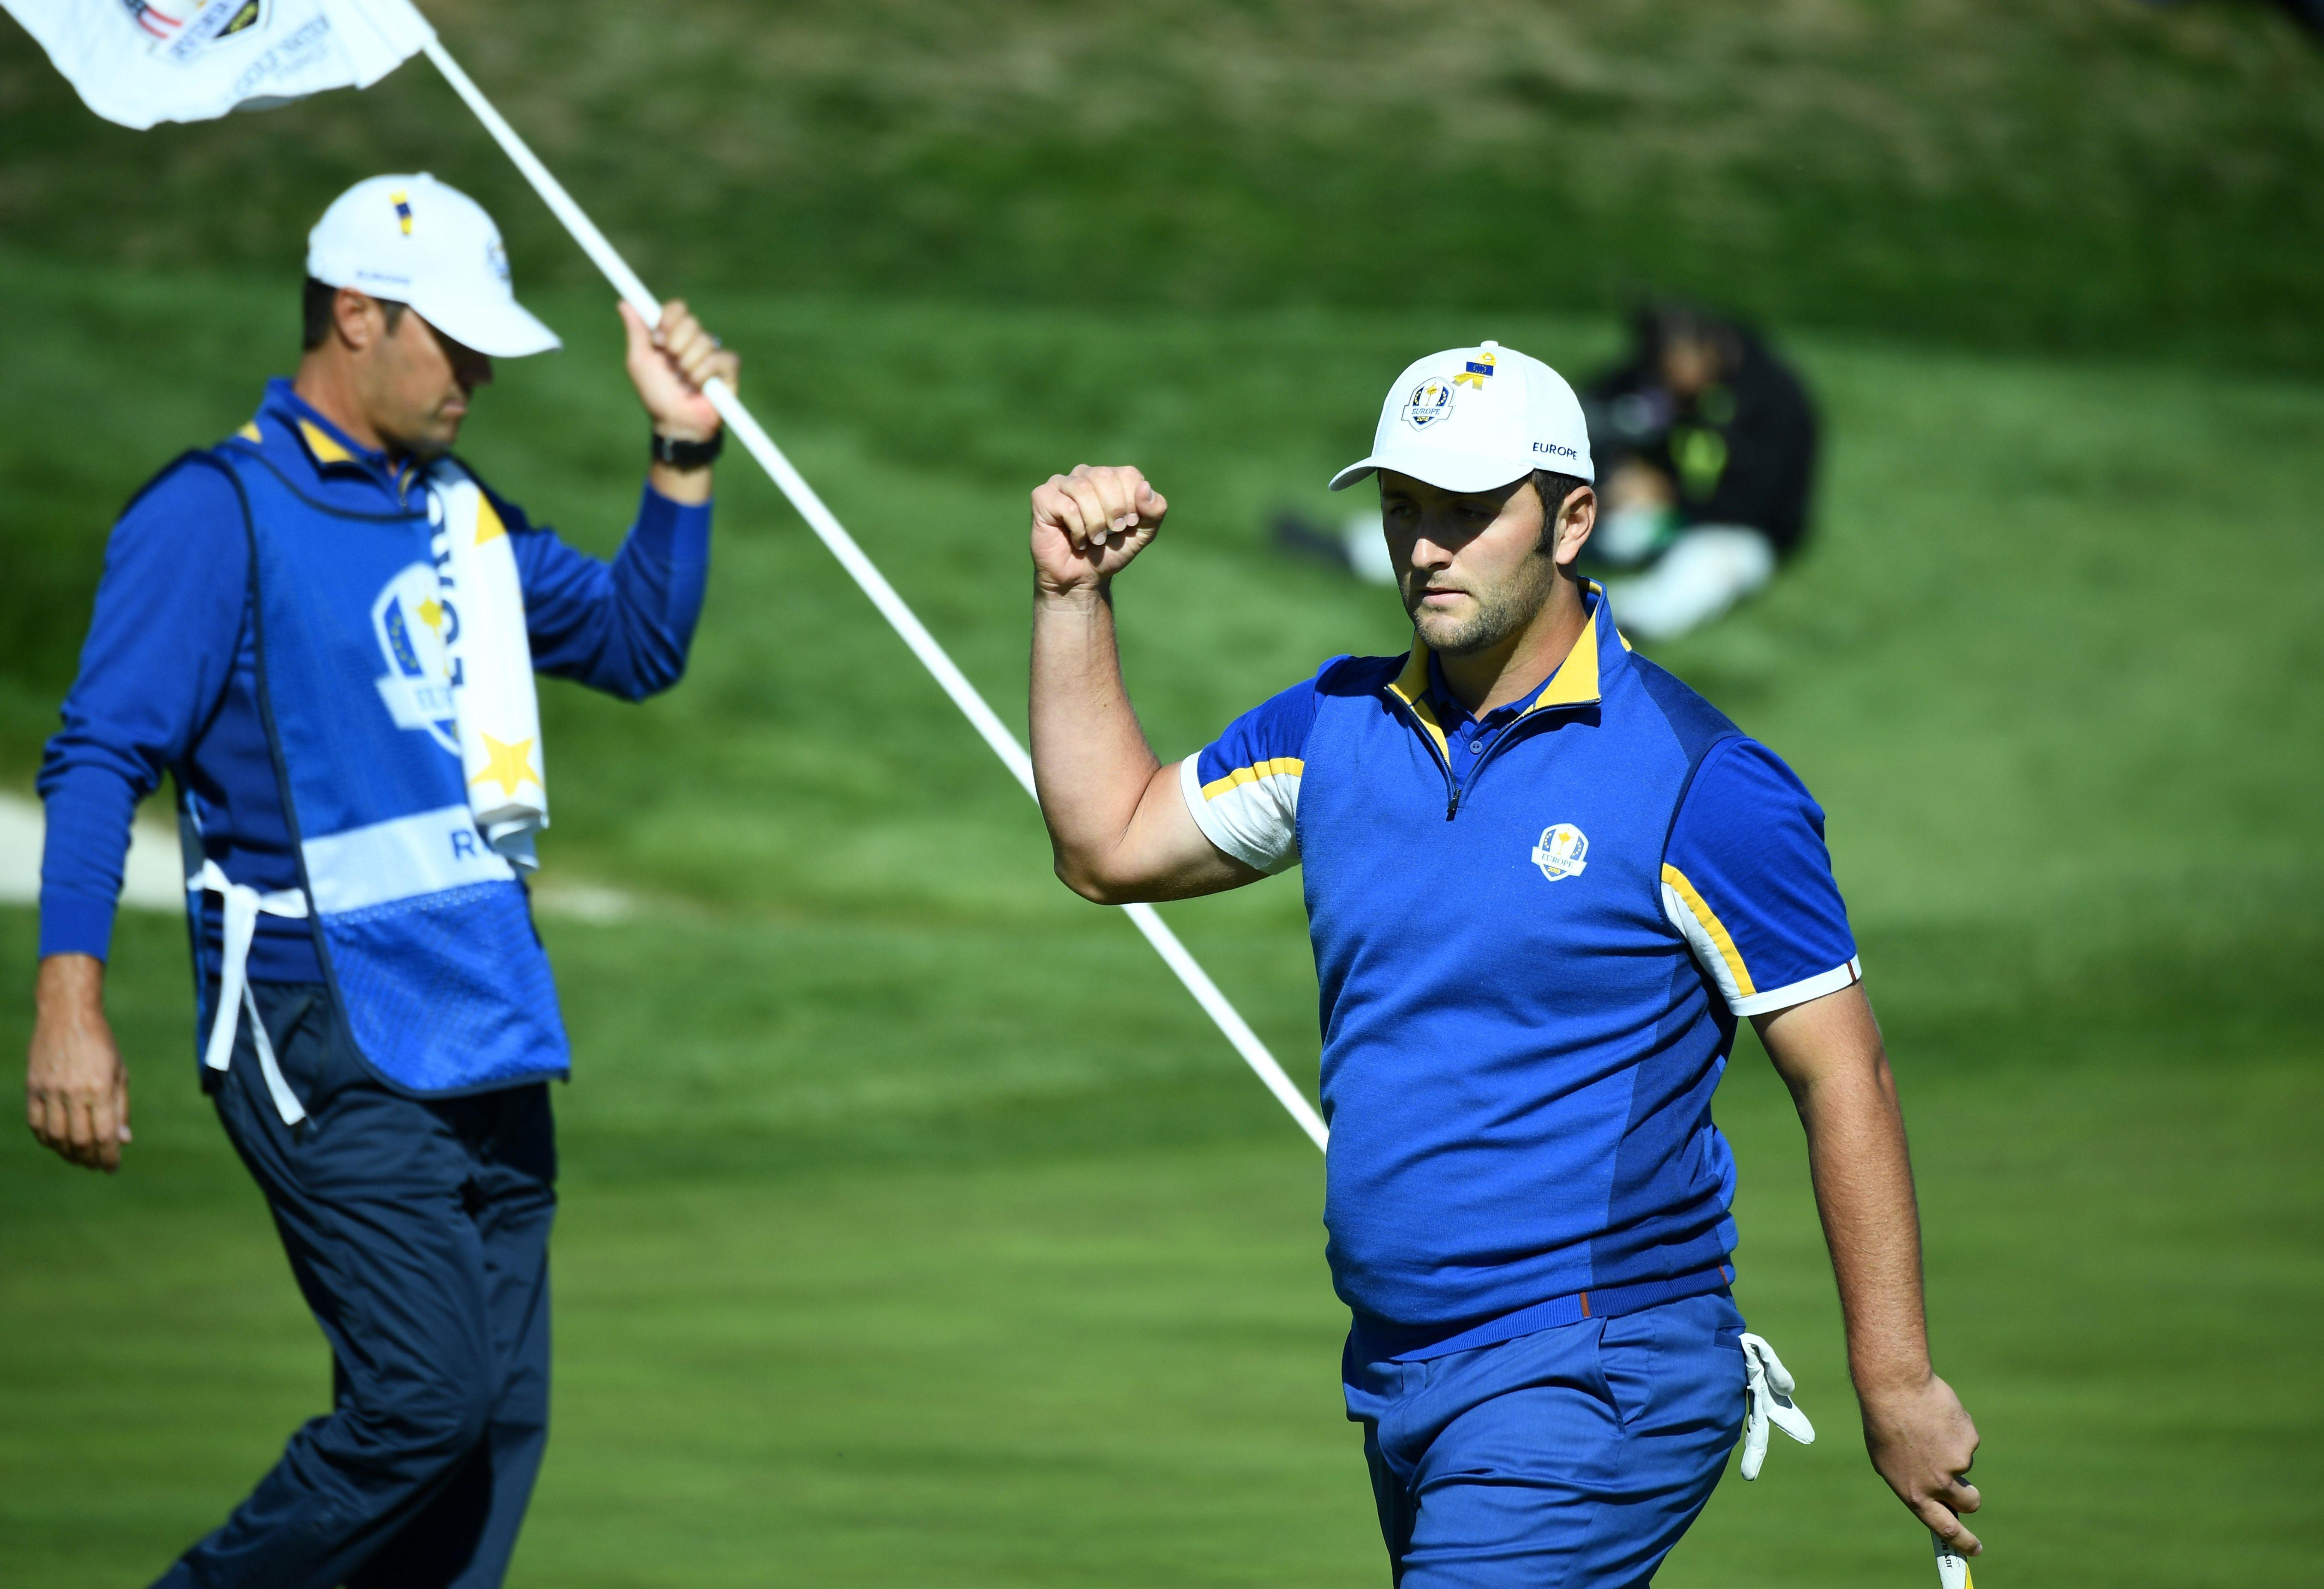 Jon Rahm beat Tiger Woods on the final day to help secure victory